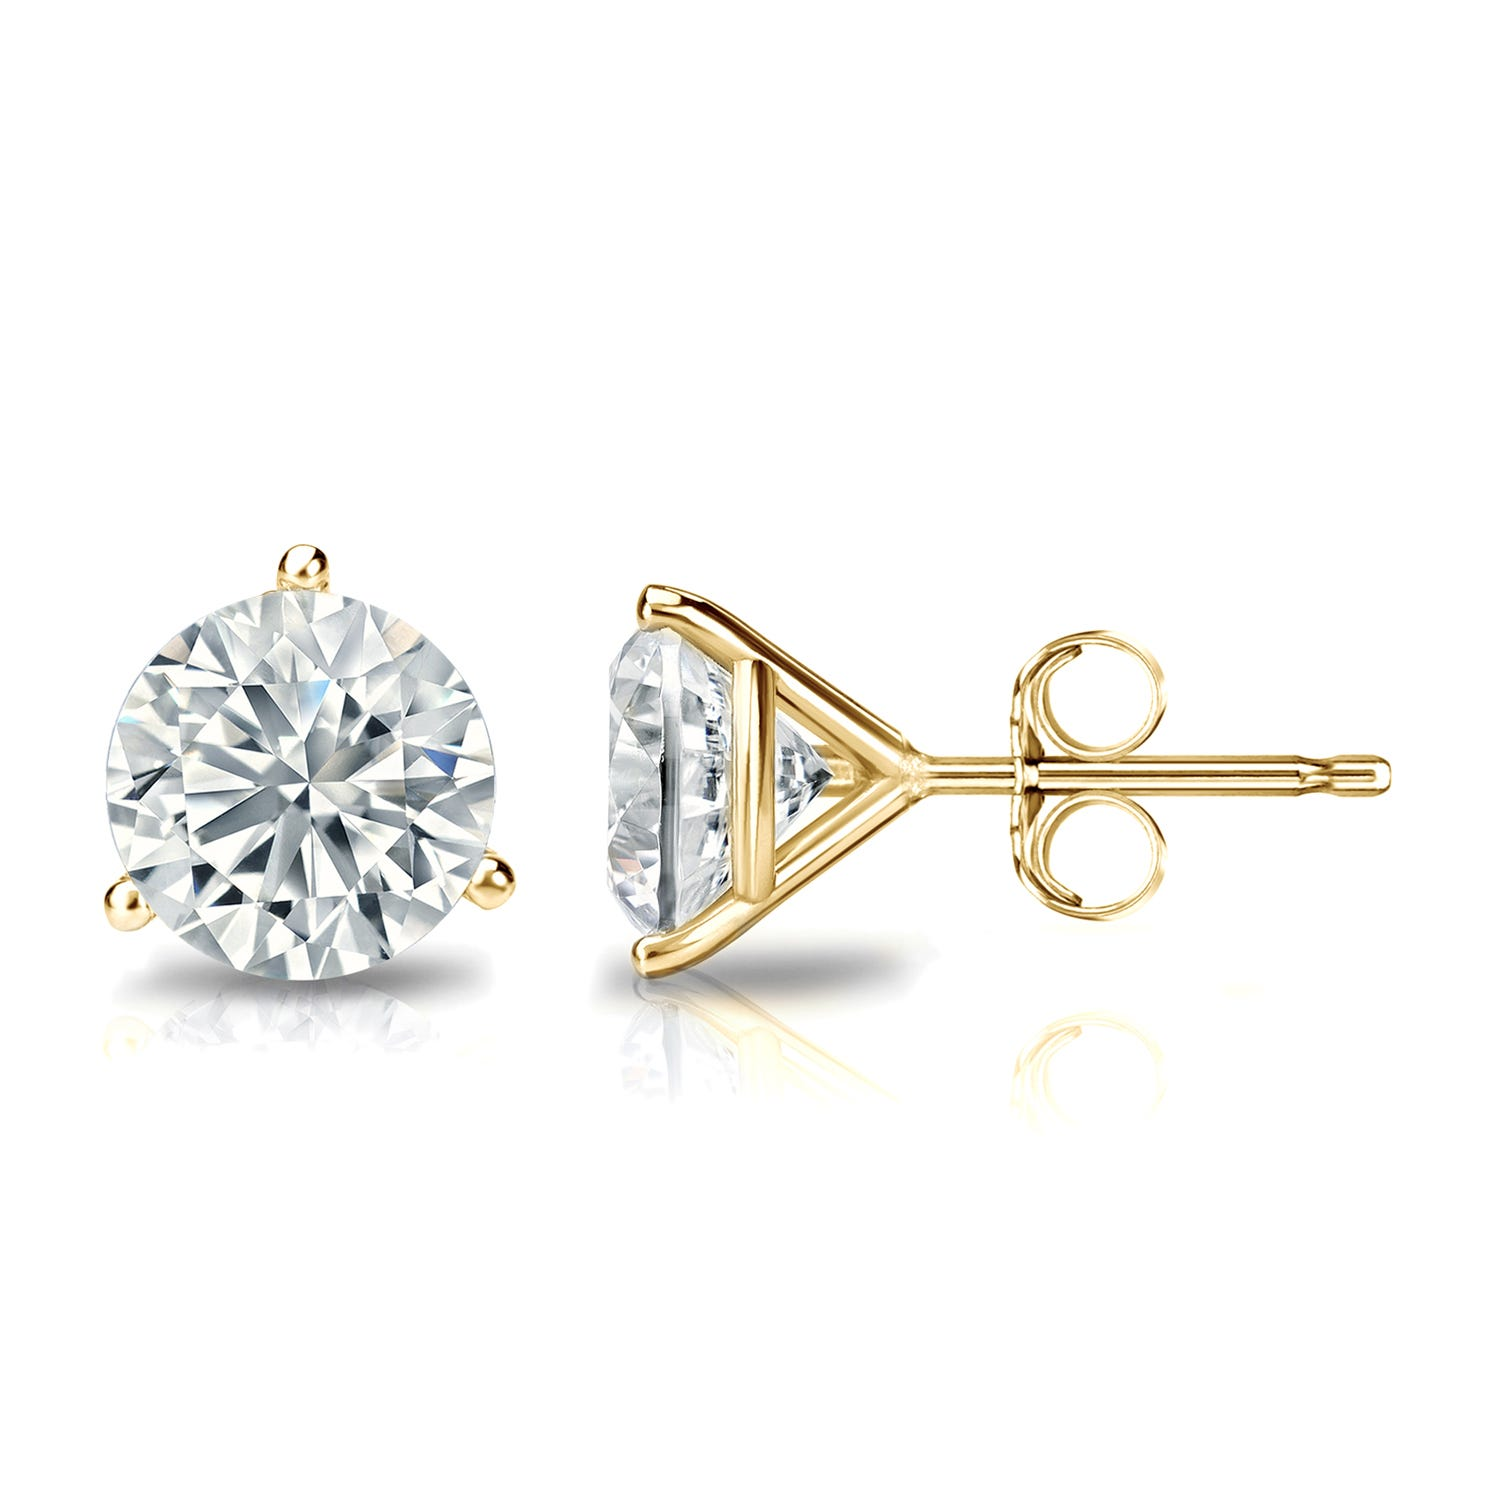 1-1/2 CTTW Round Diamond Solitaire Stud Earrings IJ I2 in 18K Yellow Gold IGI Certified 3-Prong Setting